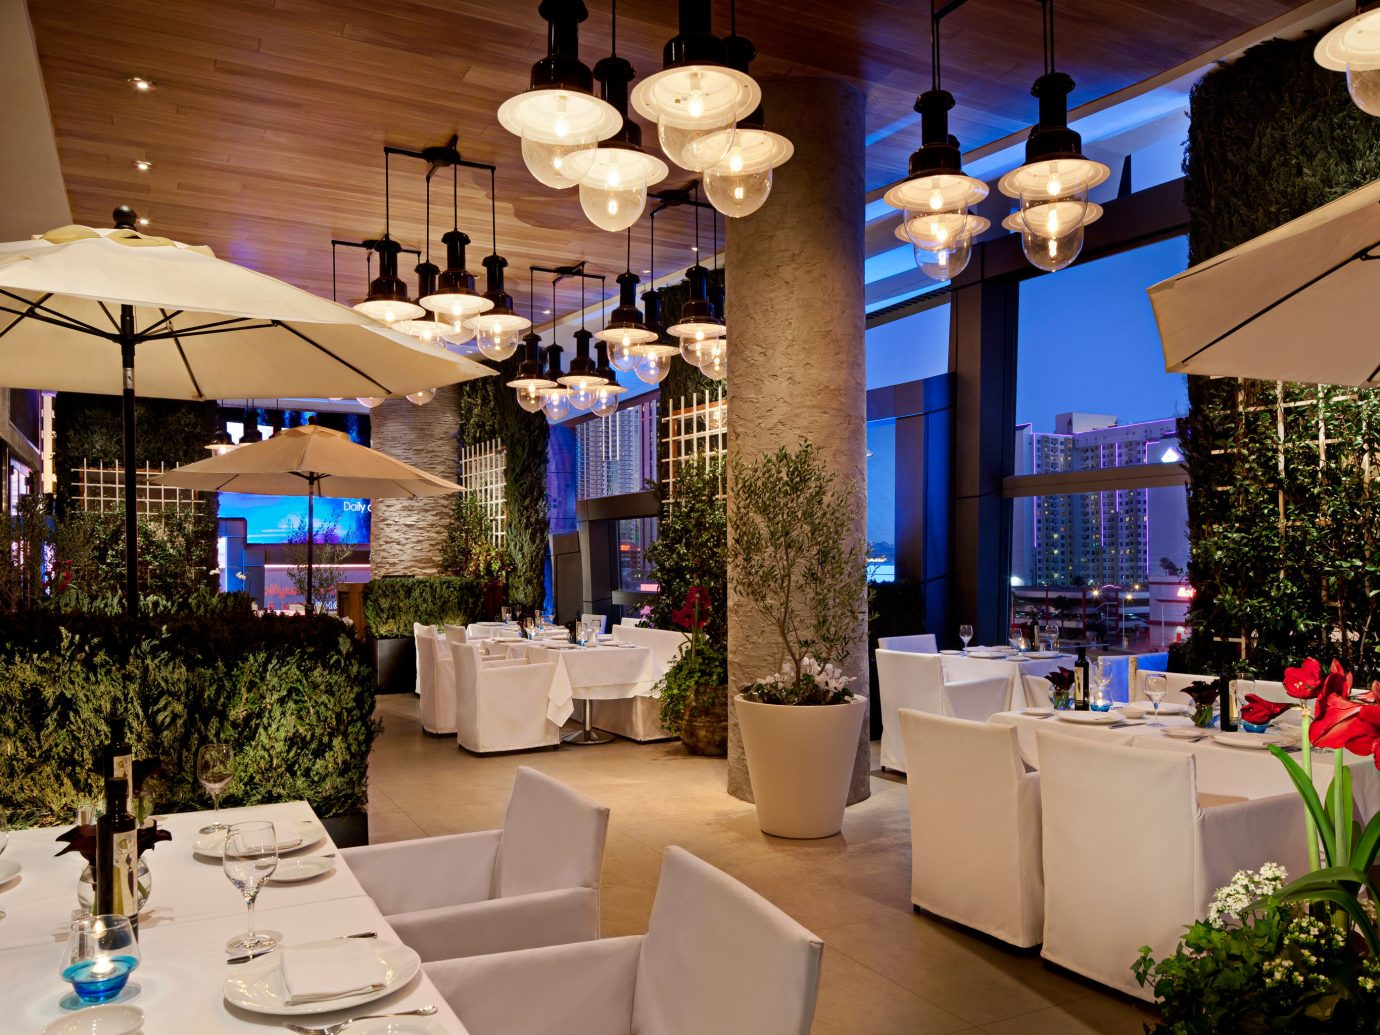 Budget City Dining Drink Eat Hotels Nightlife Resort Romance meal plant restaurant wedding floristry function hall estate wedding reception Party interior design furniture arranged